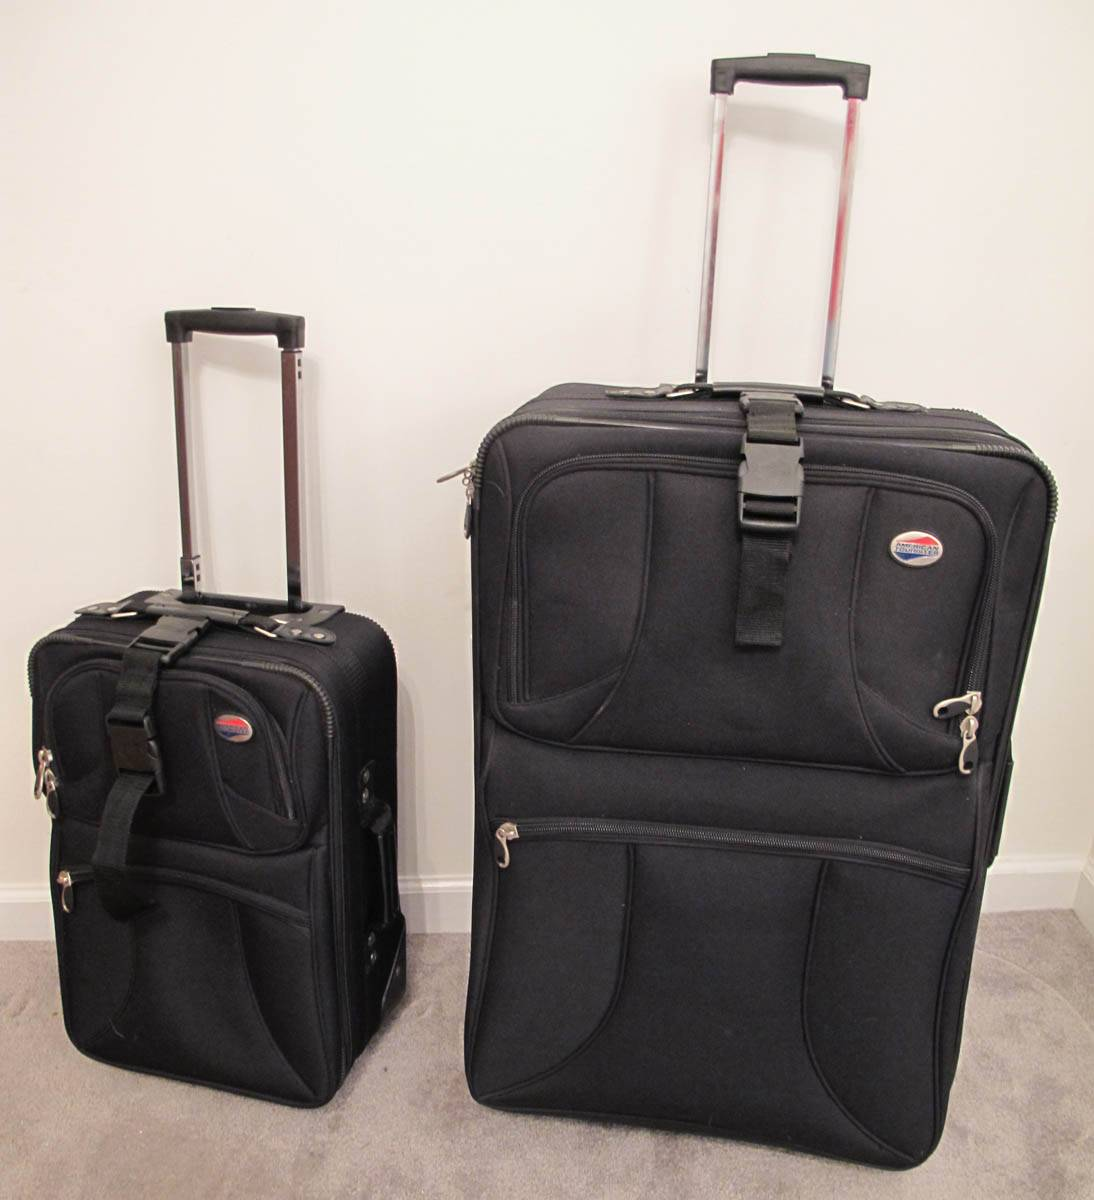 American Tourister 2-Piece Luggage